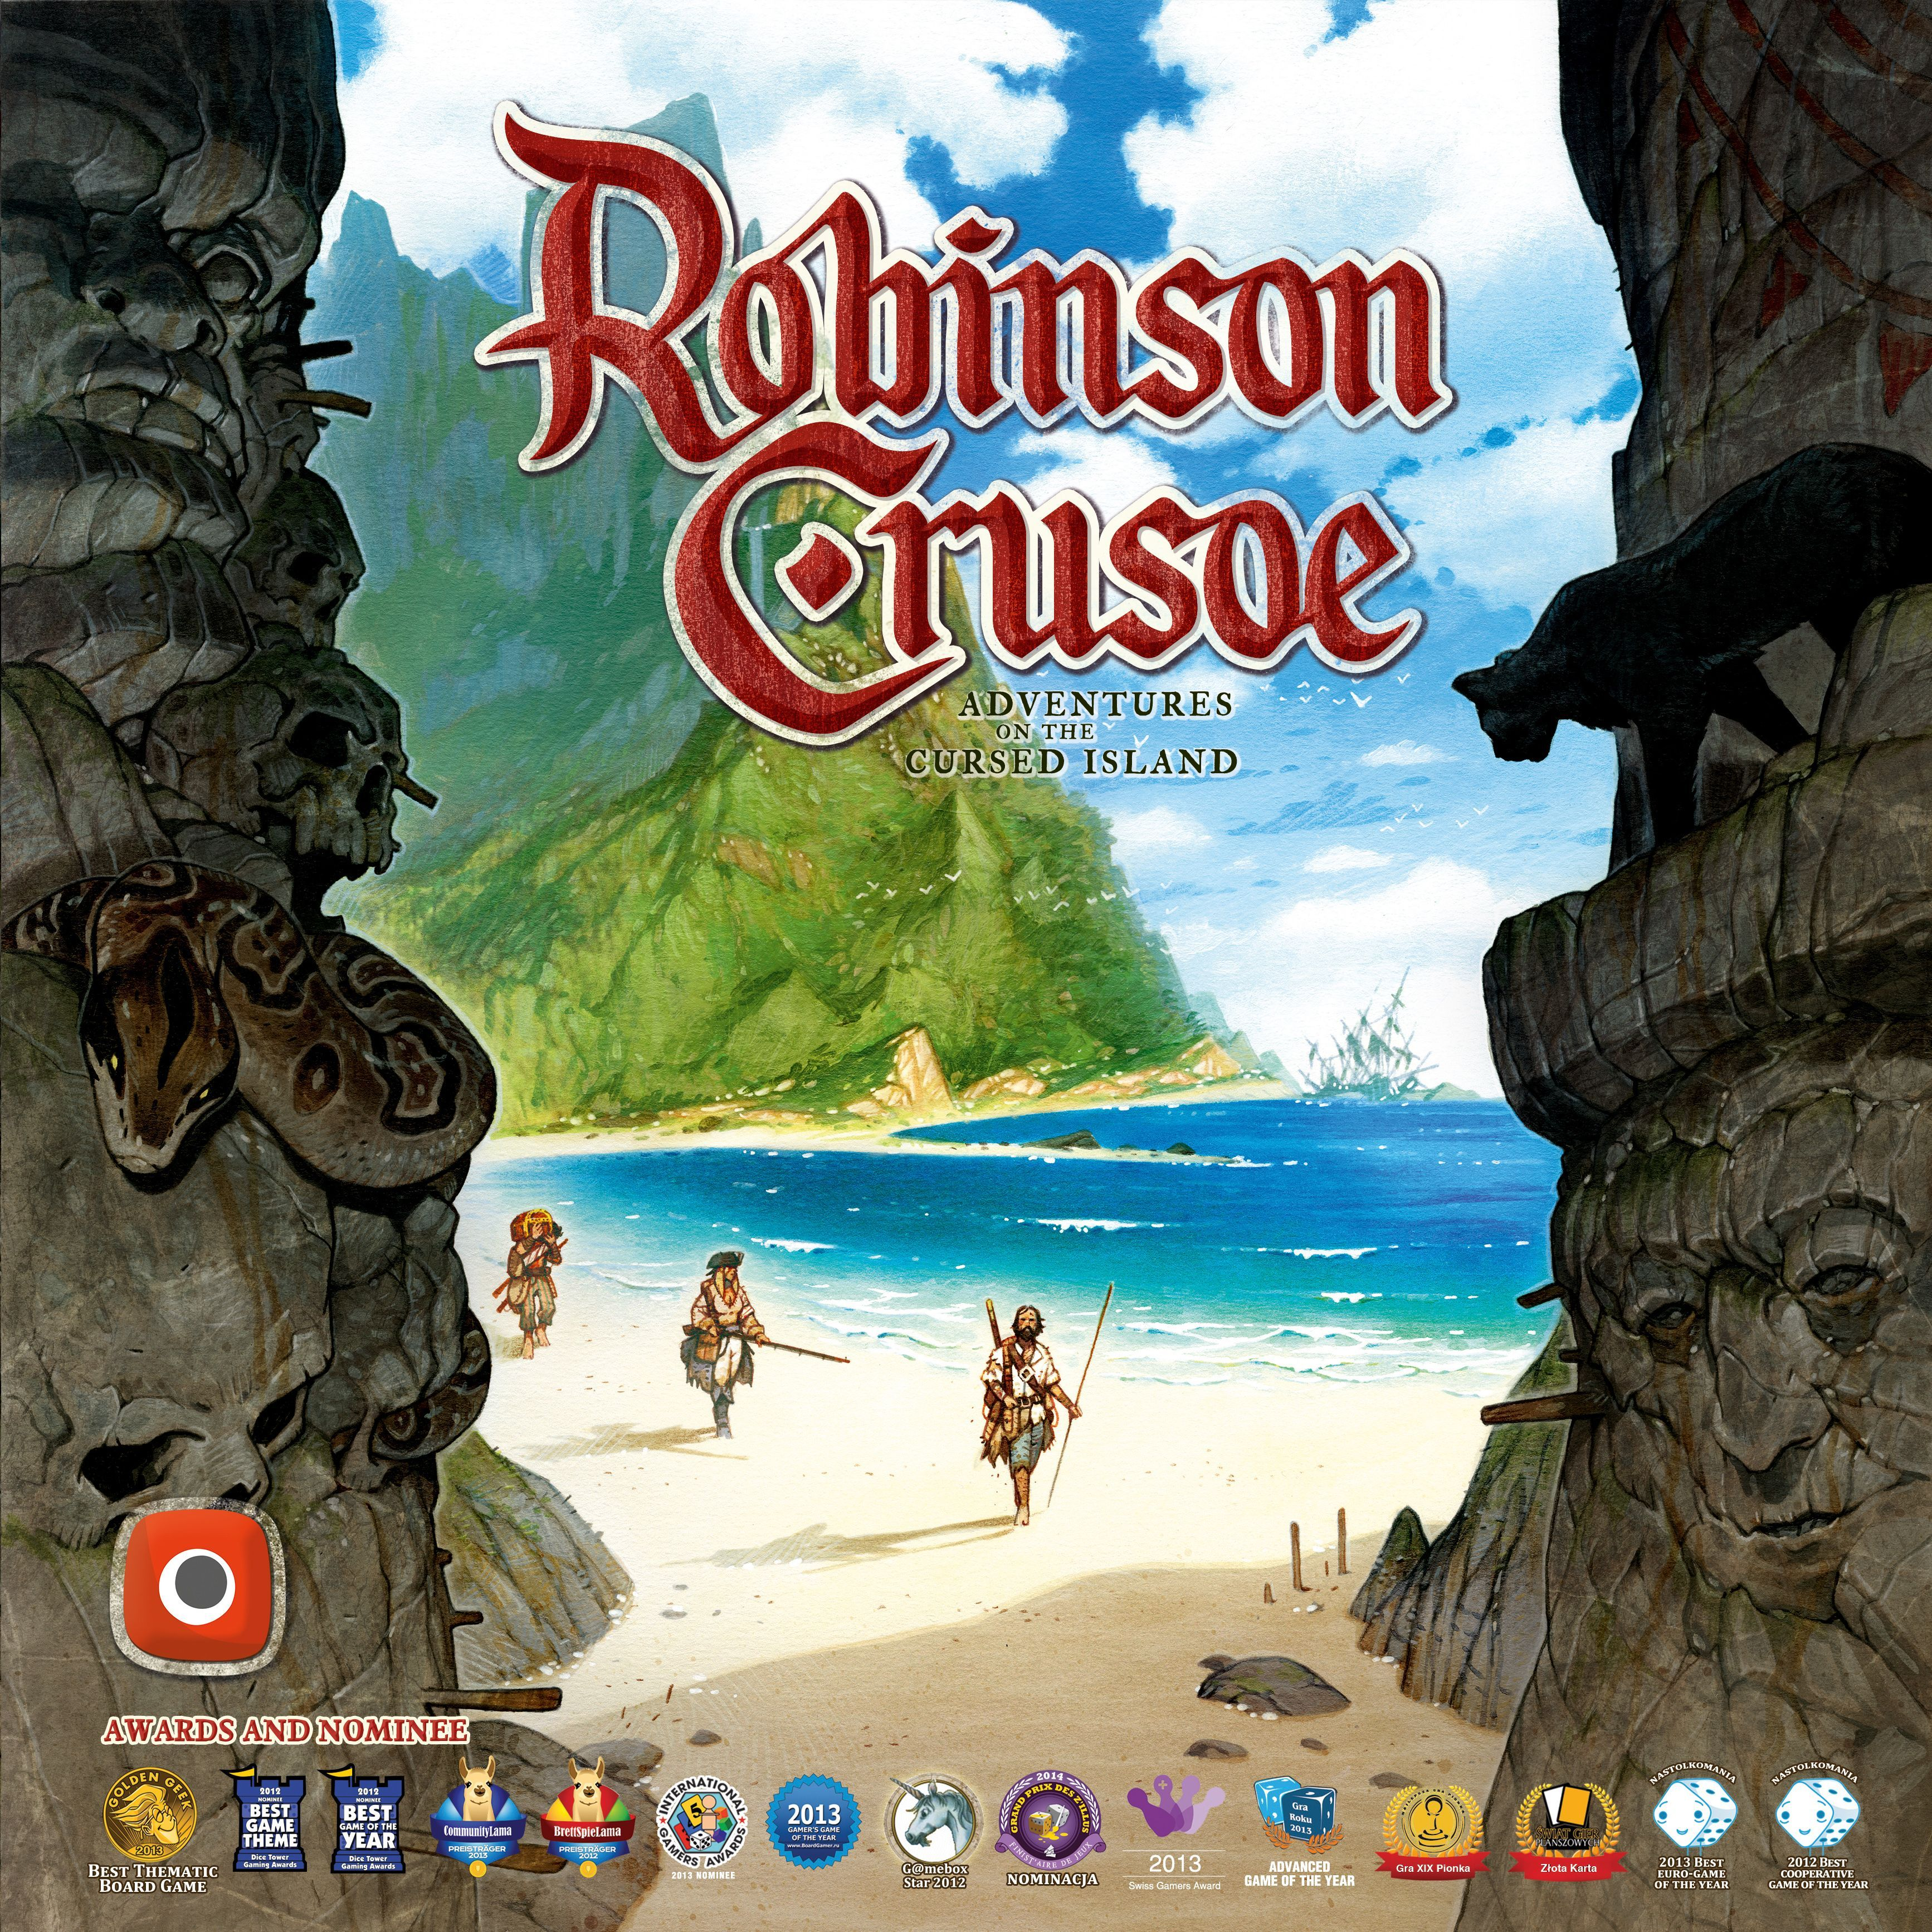 Main image for Robinson Crusoe: Adventures on the Cursed Island